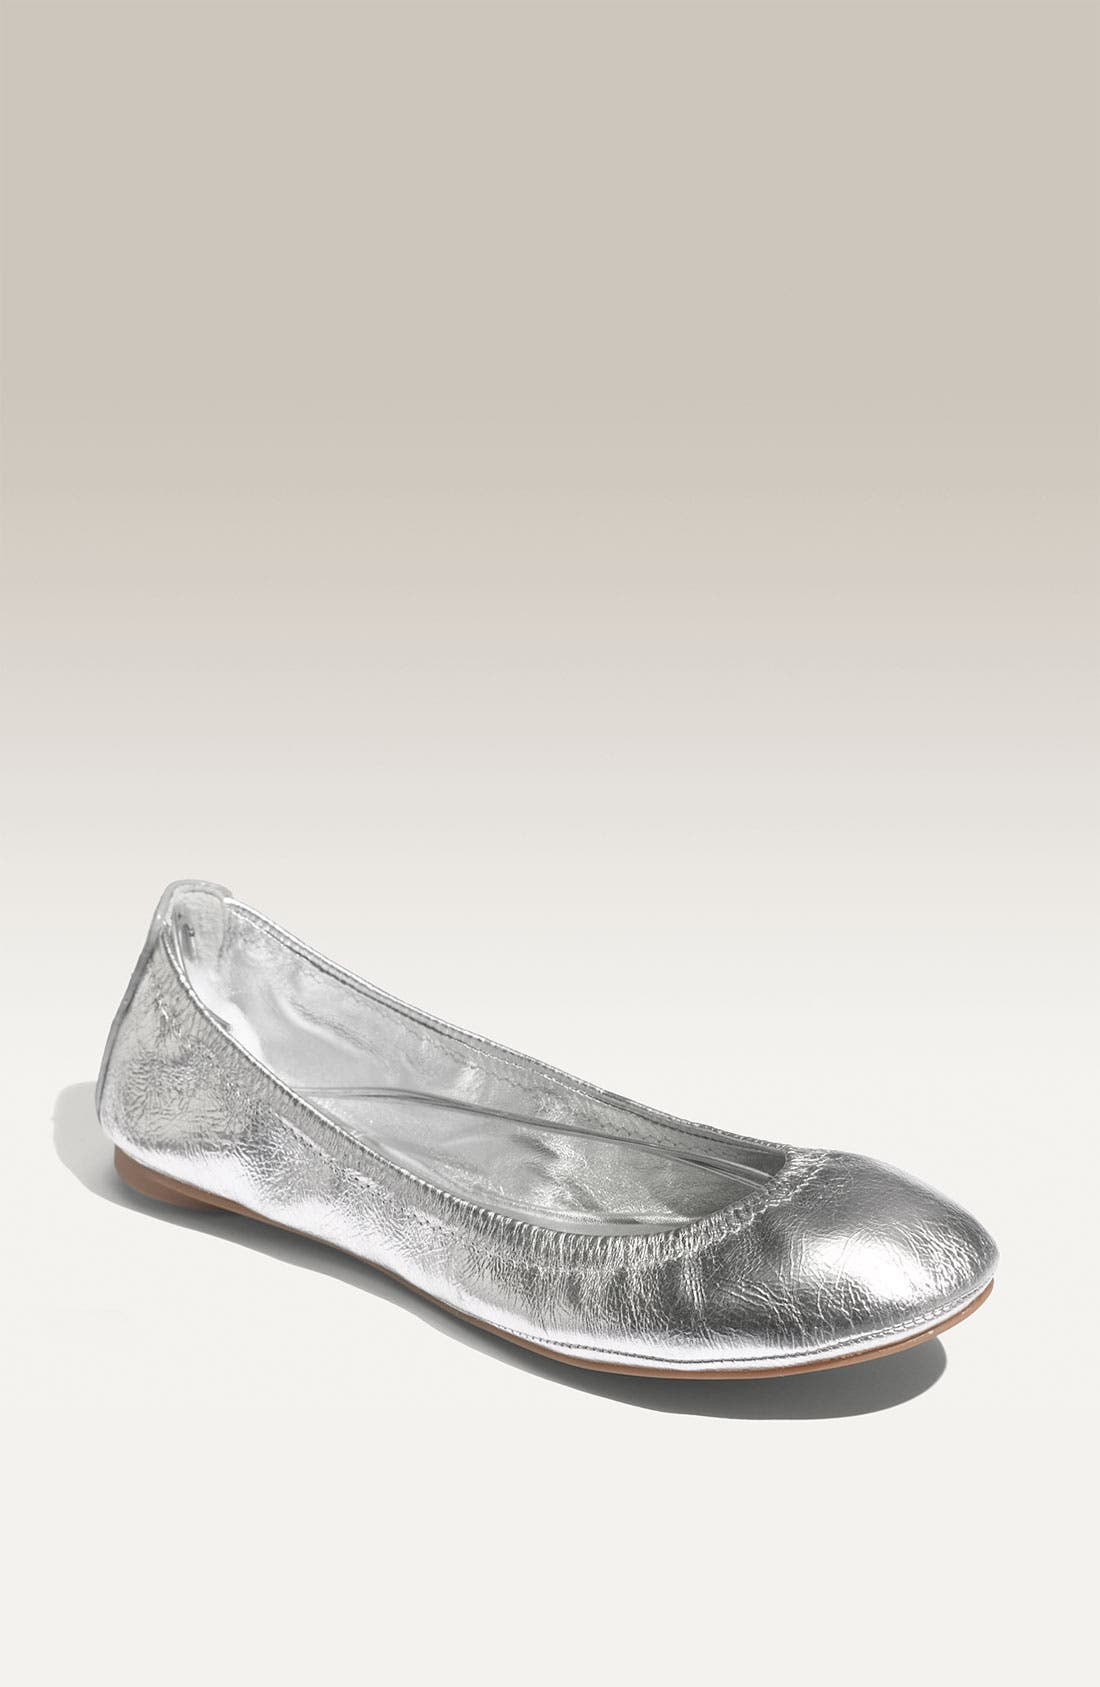 Alternate Image 1 Selected - Tory Burch 'Eddie' Ballerina Flat